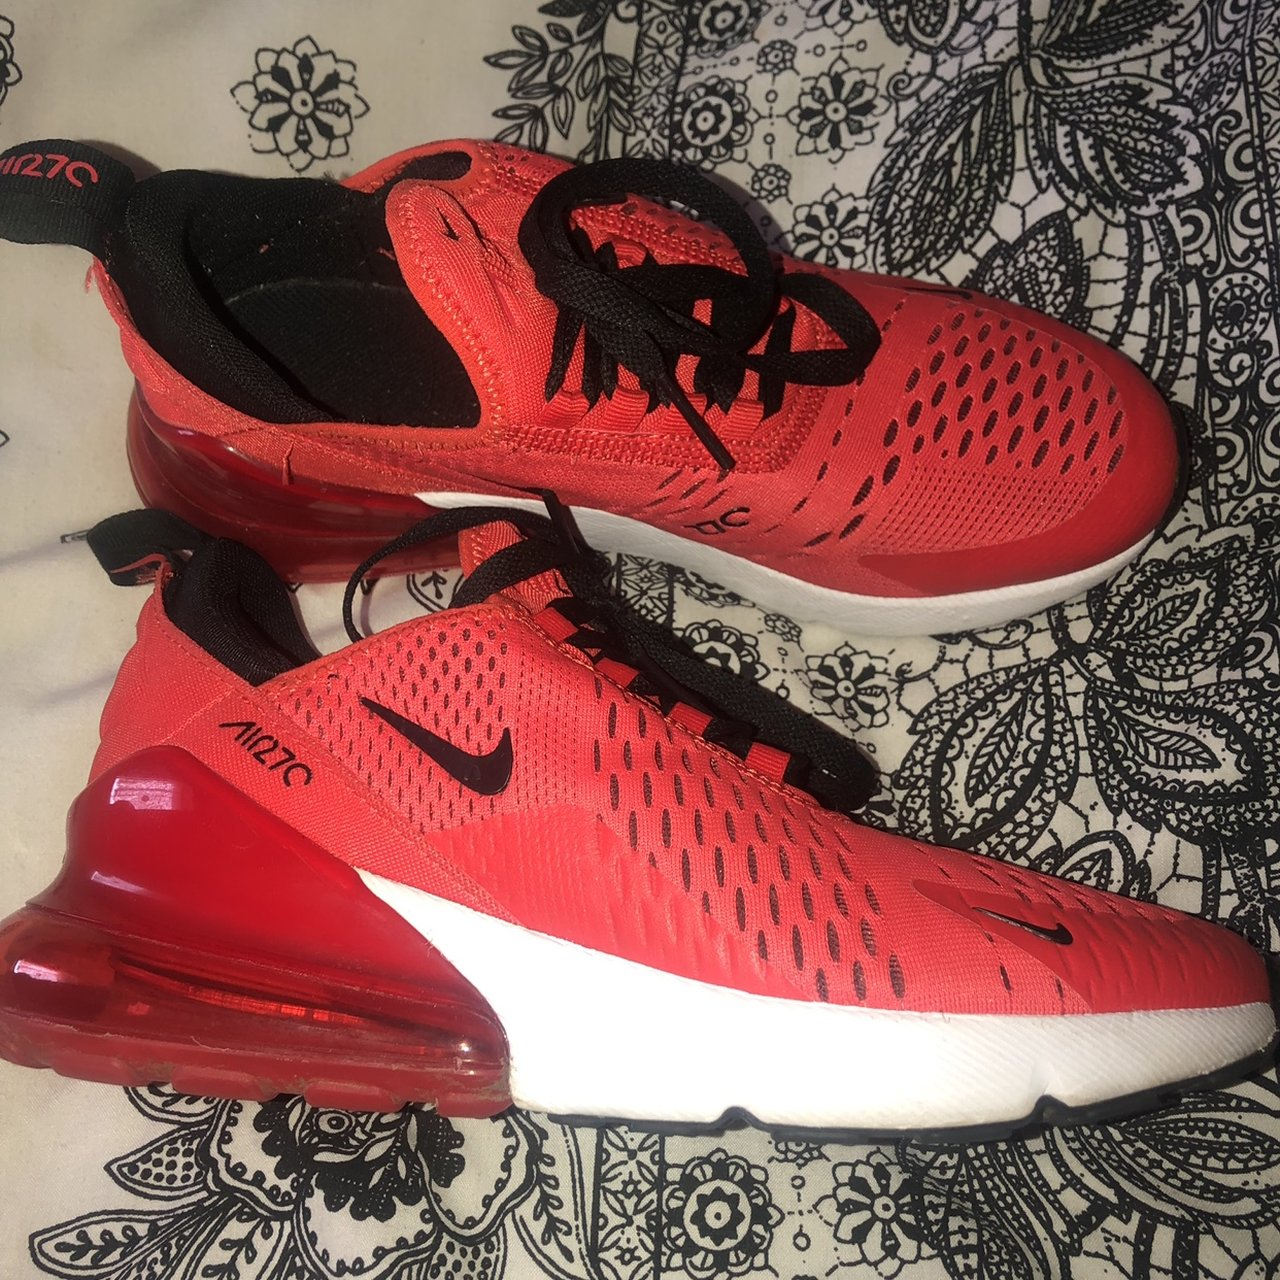 Nike Air Max 270s in Red Only worn a